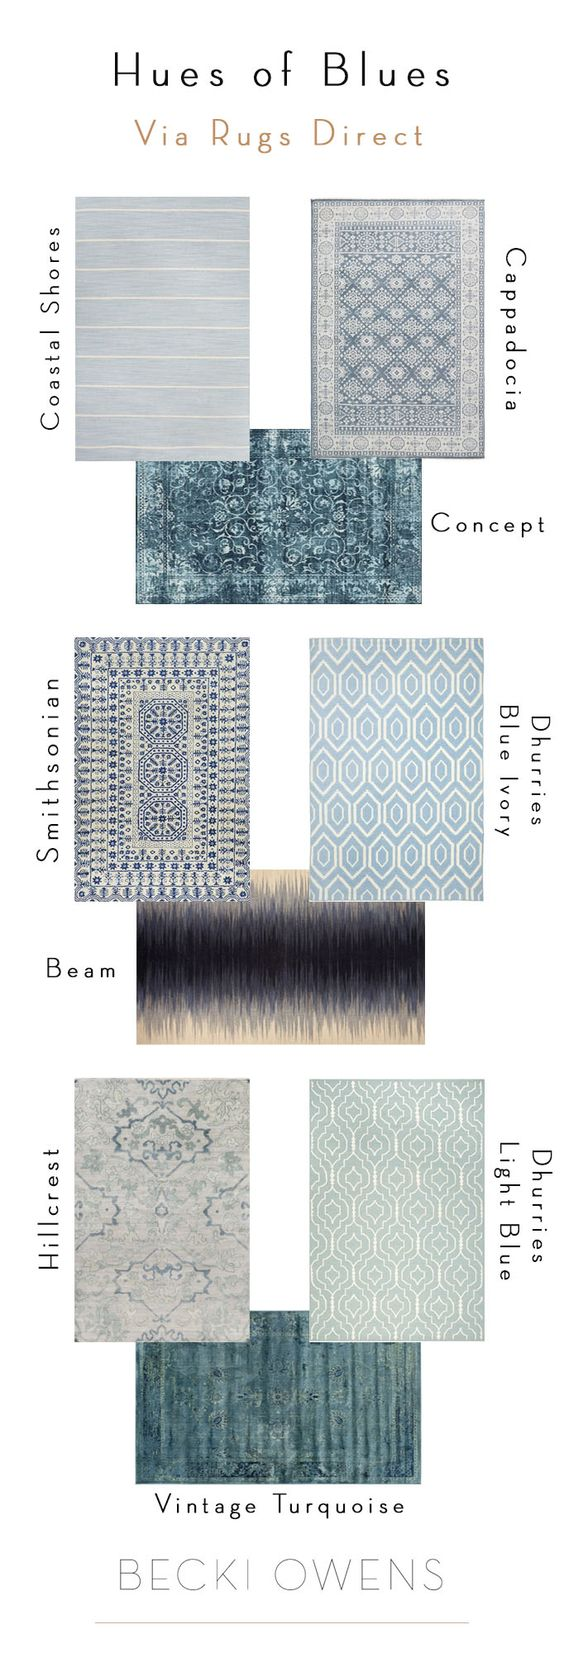 Decorating with Hues of Blues | Styling tips from Becki Owens + Rugs Direct